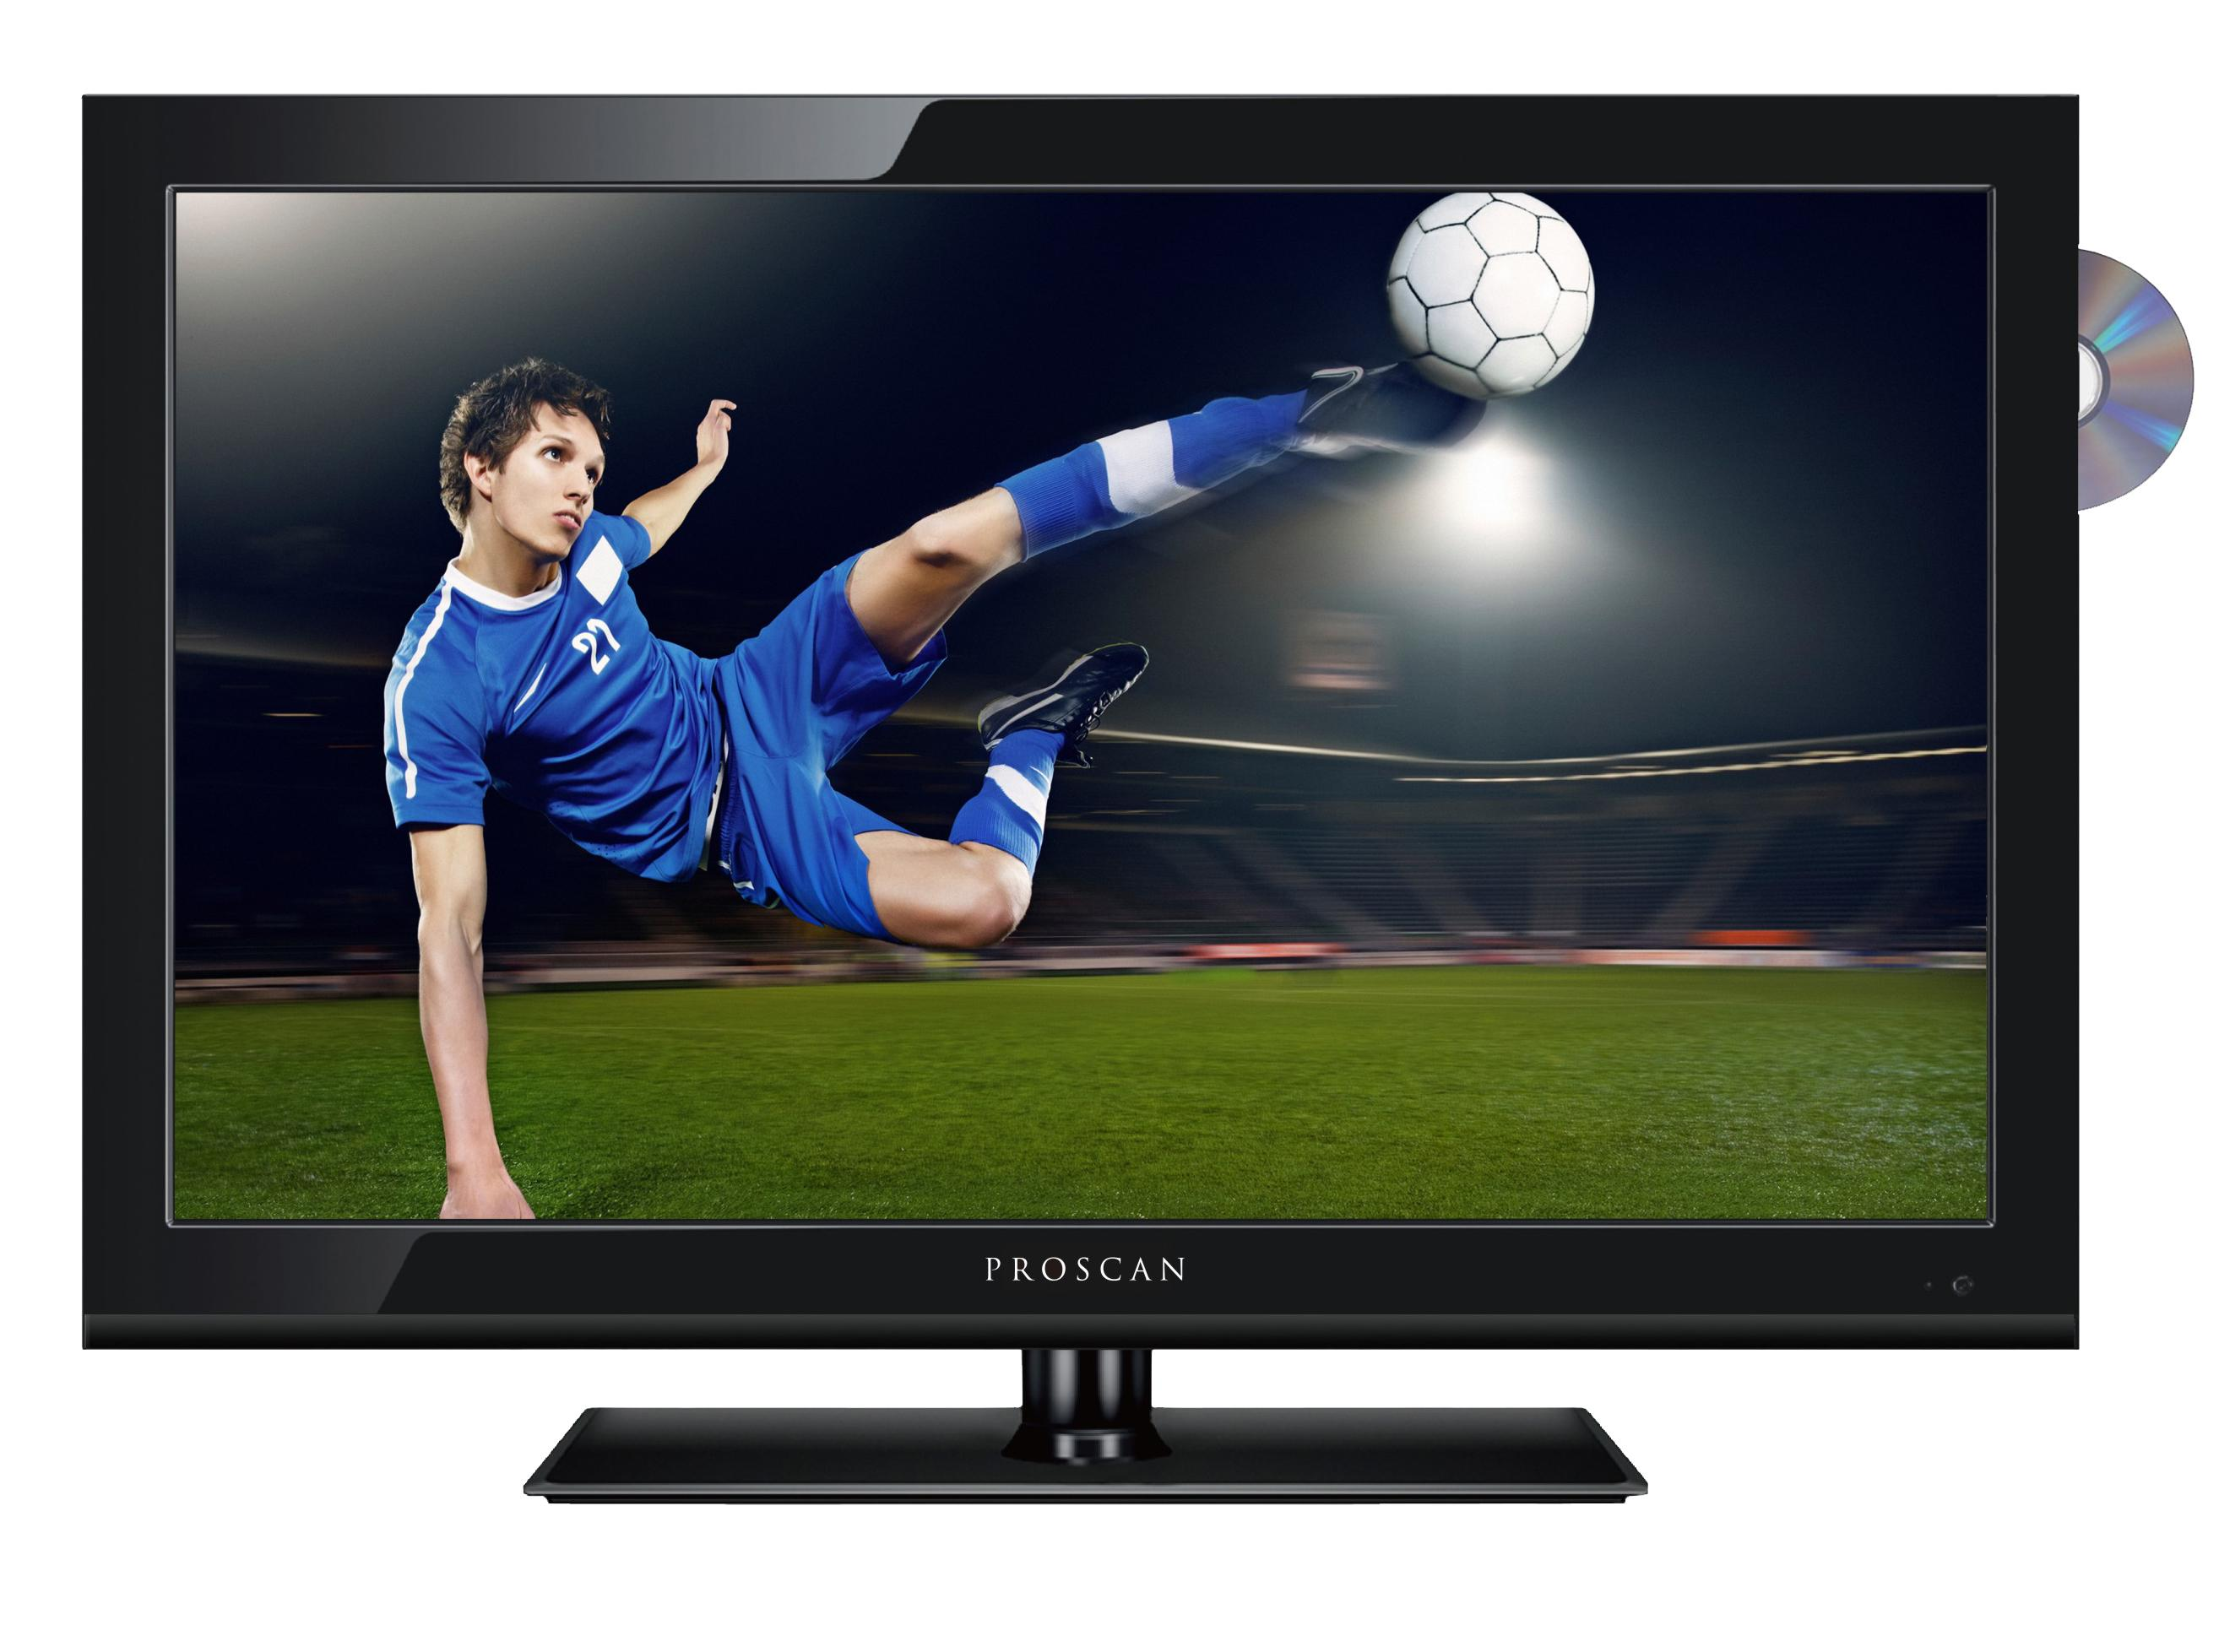 proscan pledv1945a b 19 inch 720p 60hz led tv dvd combo electronics. Black Bedroom Furniture Sets. Home Design Ideas